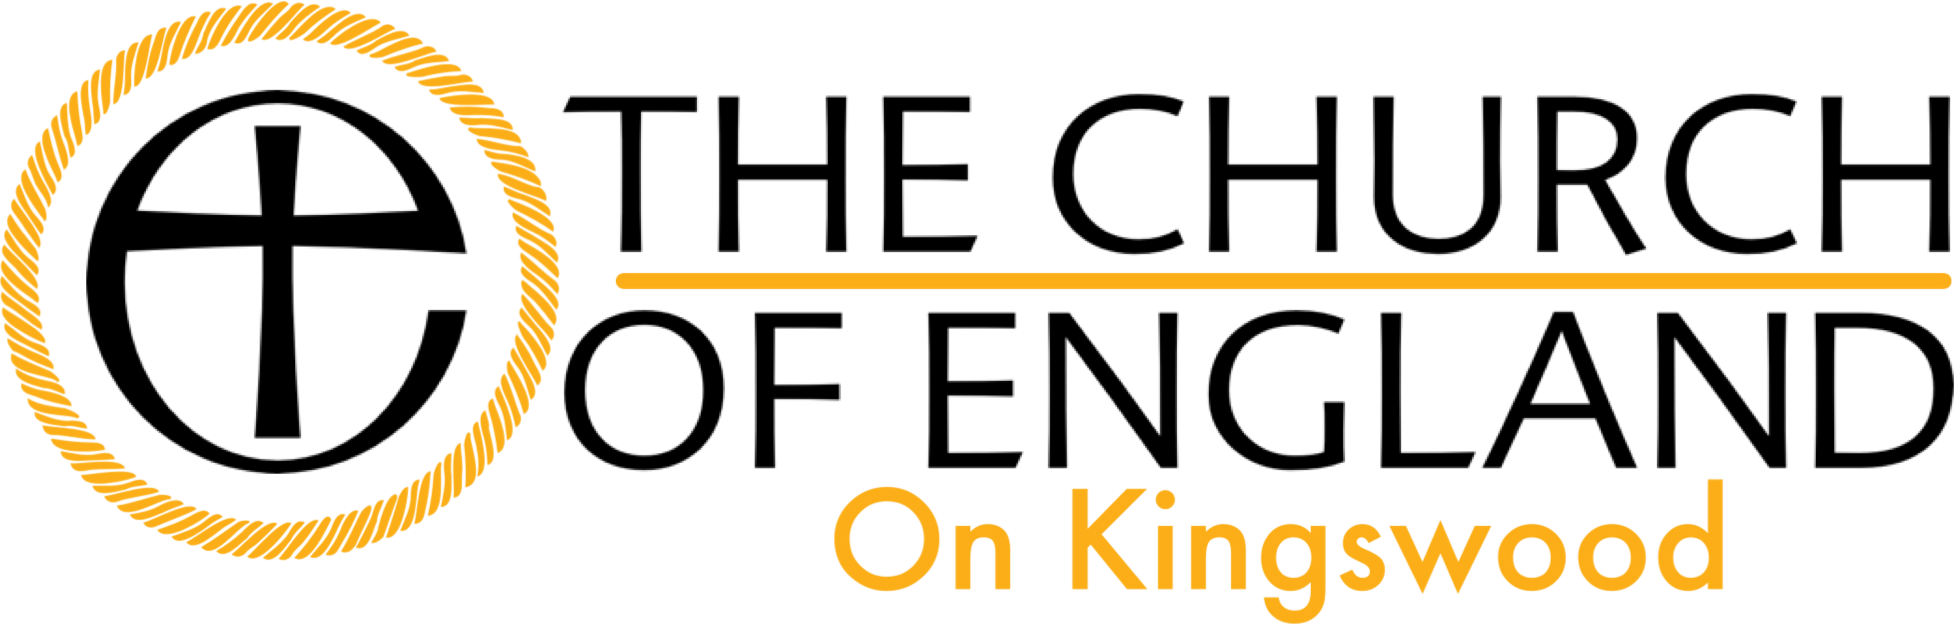 Kingswood Logo.png